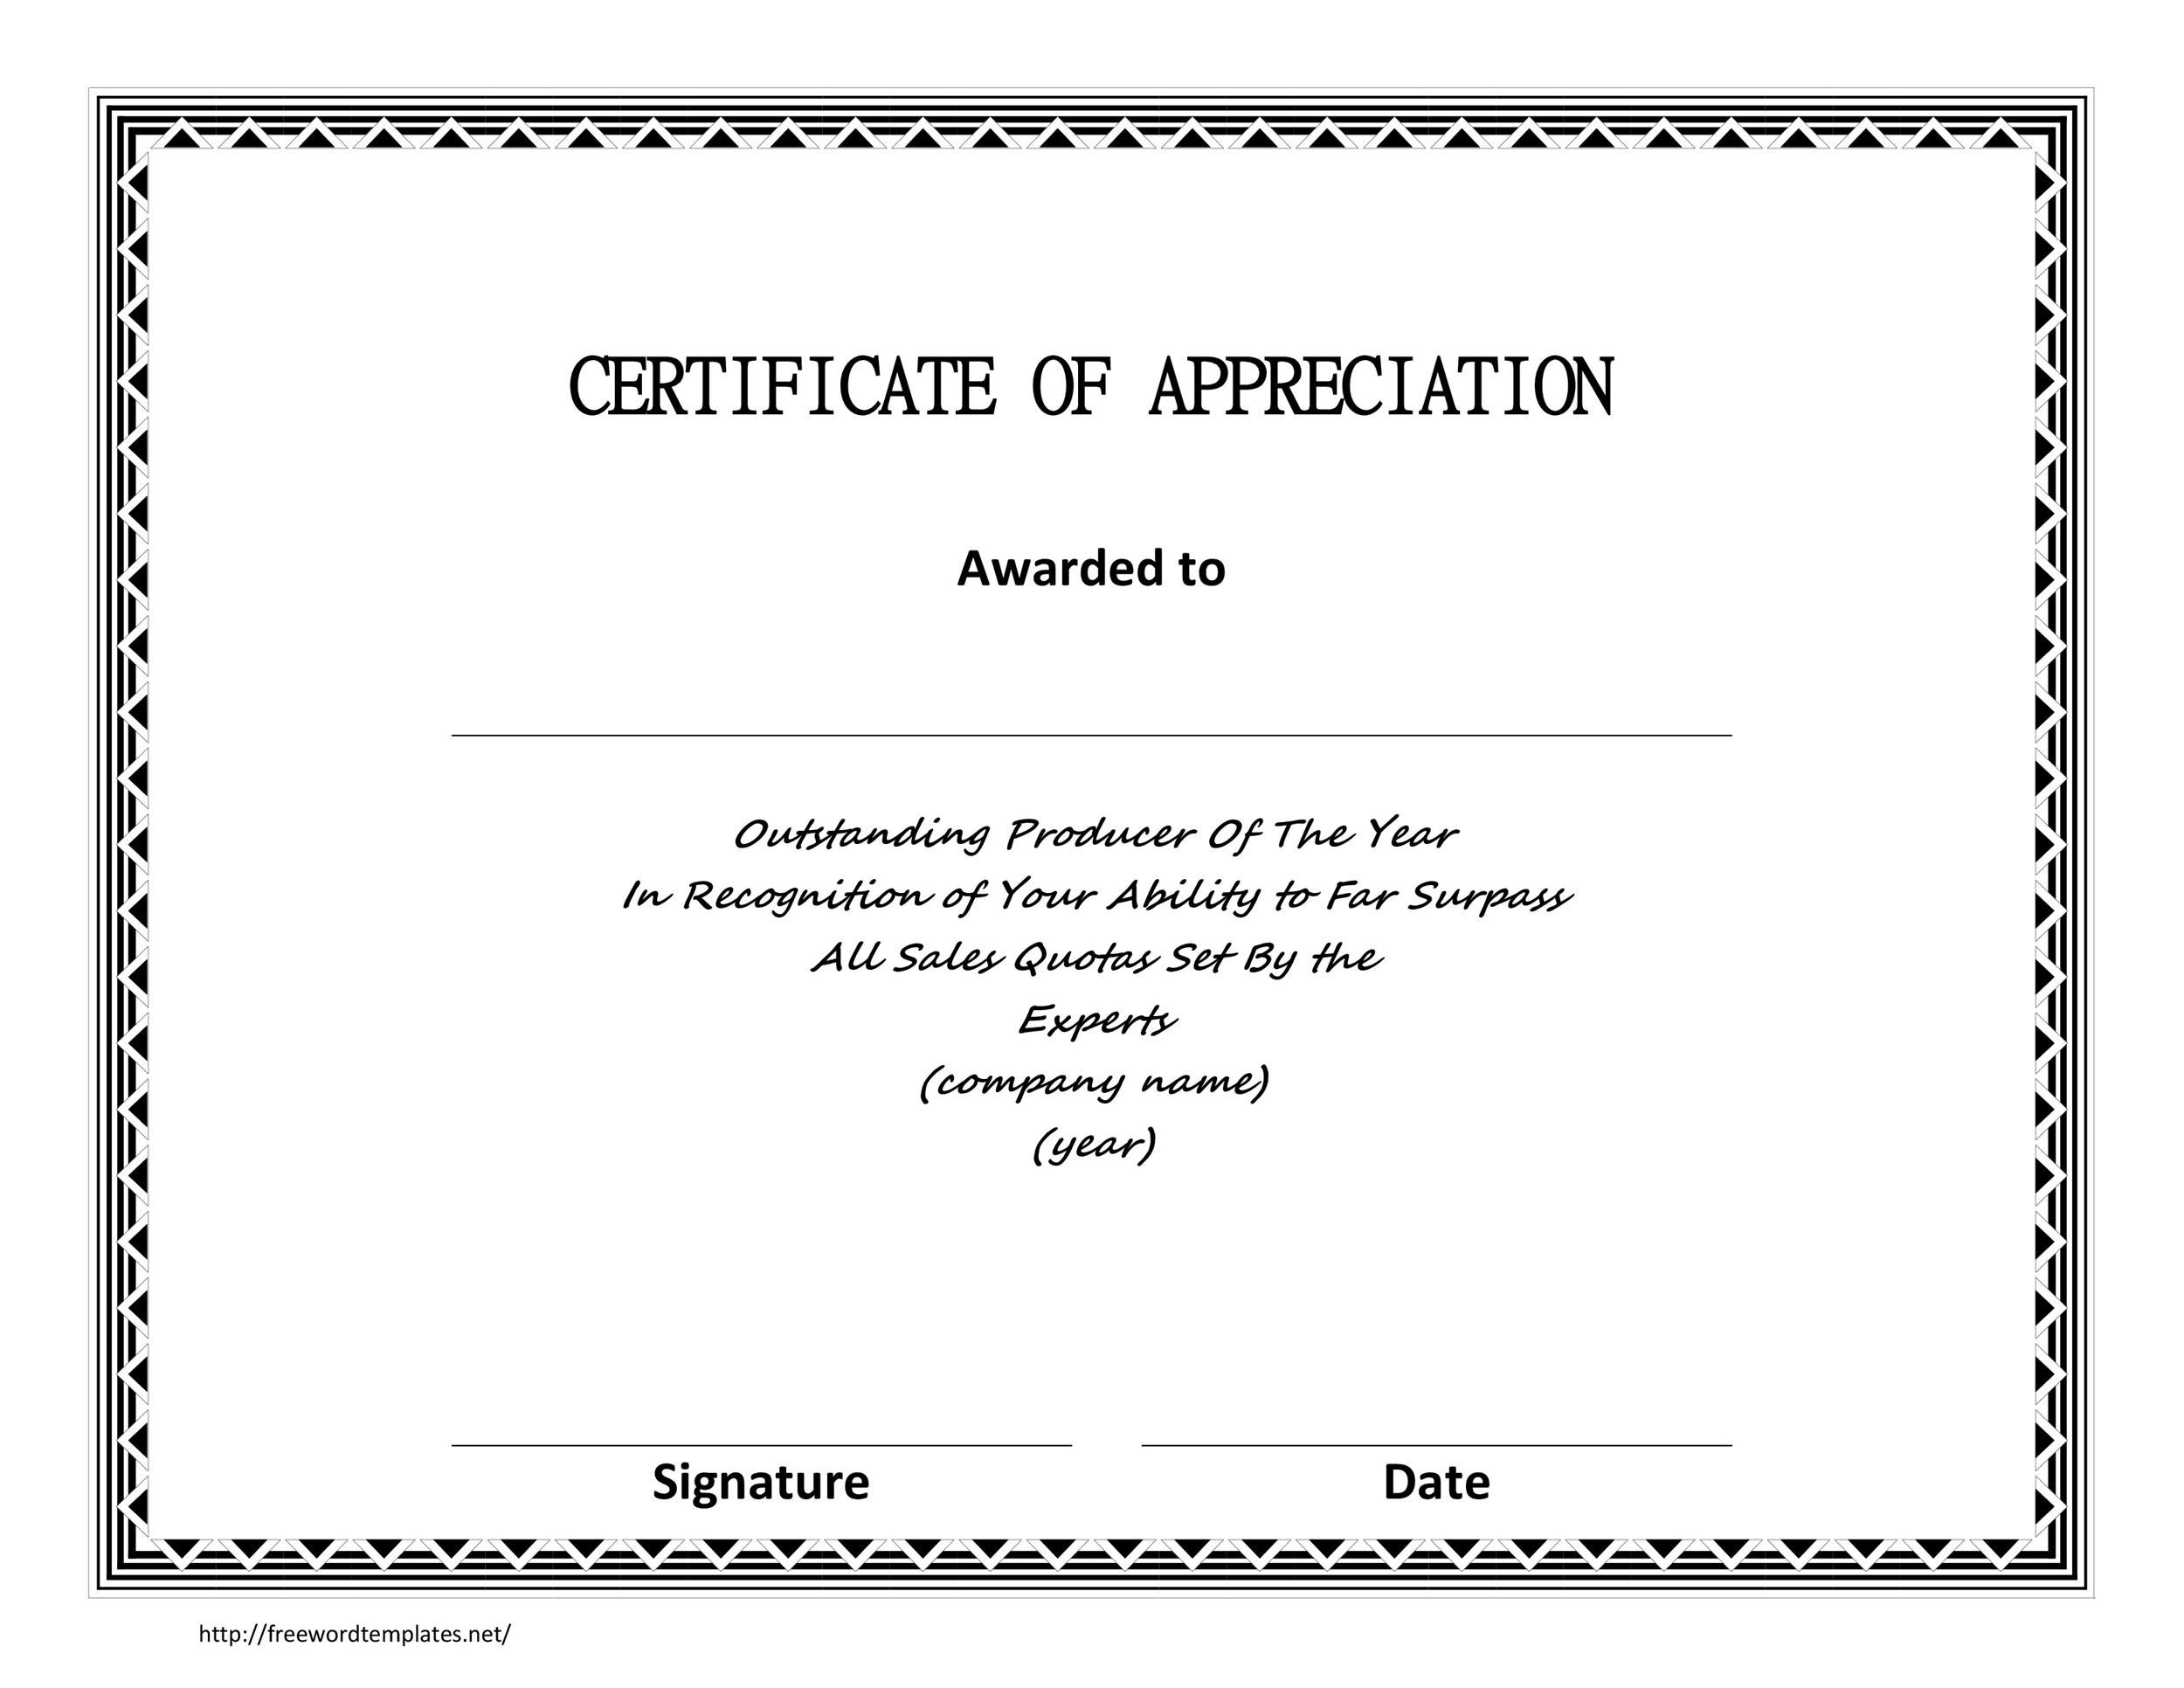 30 free certificate of appreciation templates and letters printable certificate of appreciation 06 yelopaper Image collections